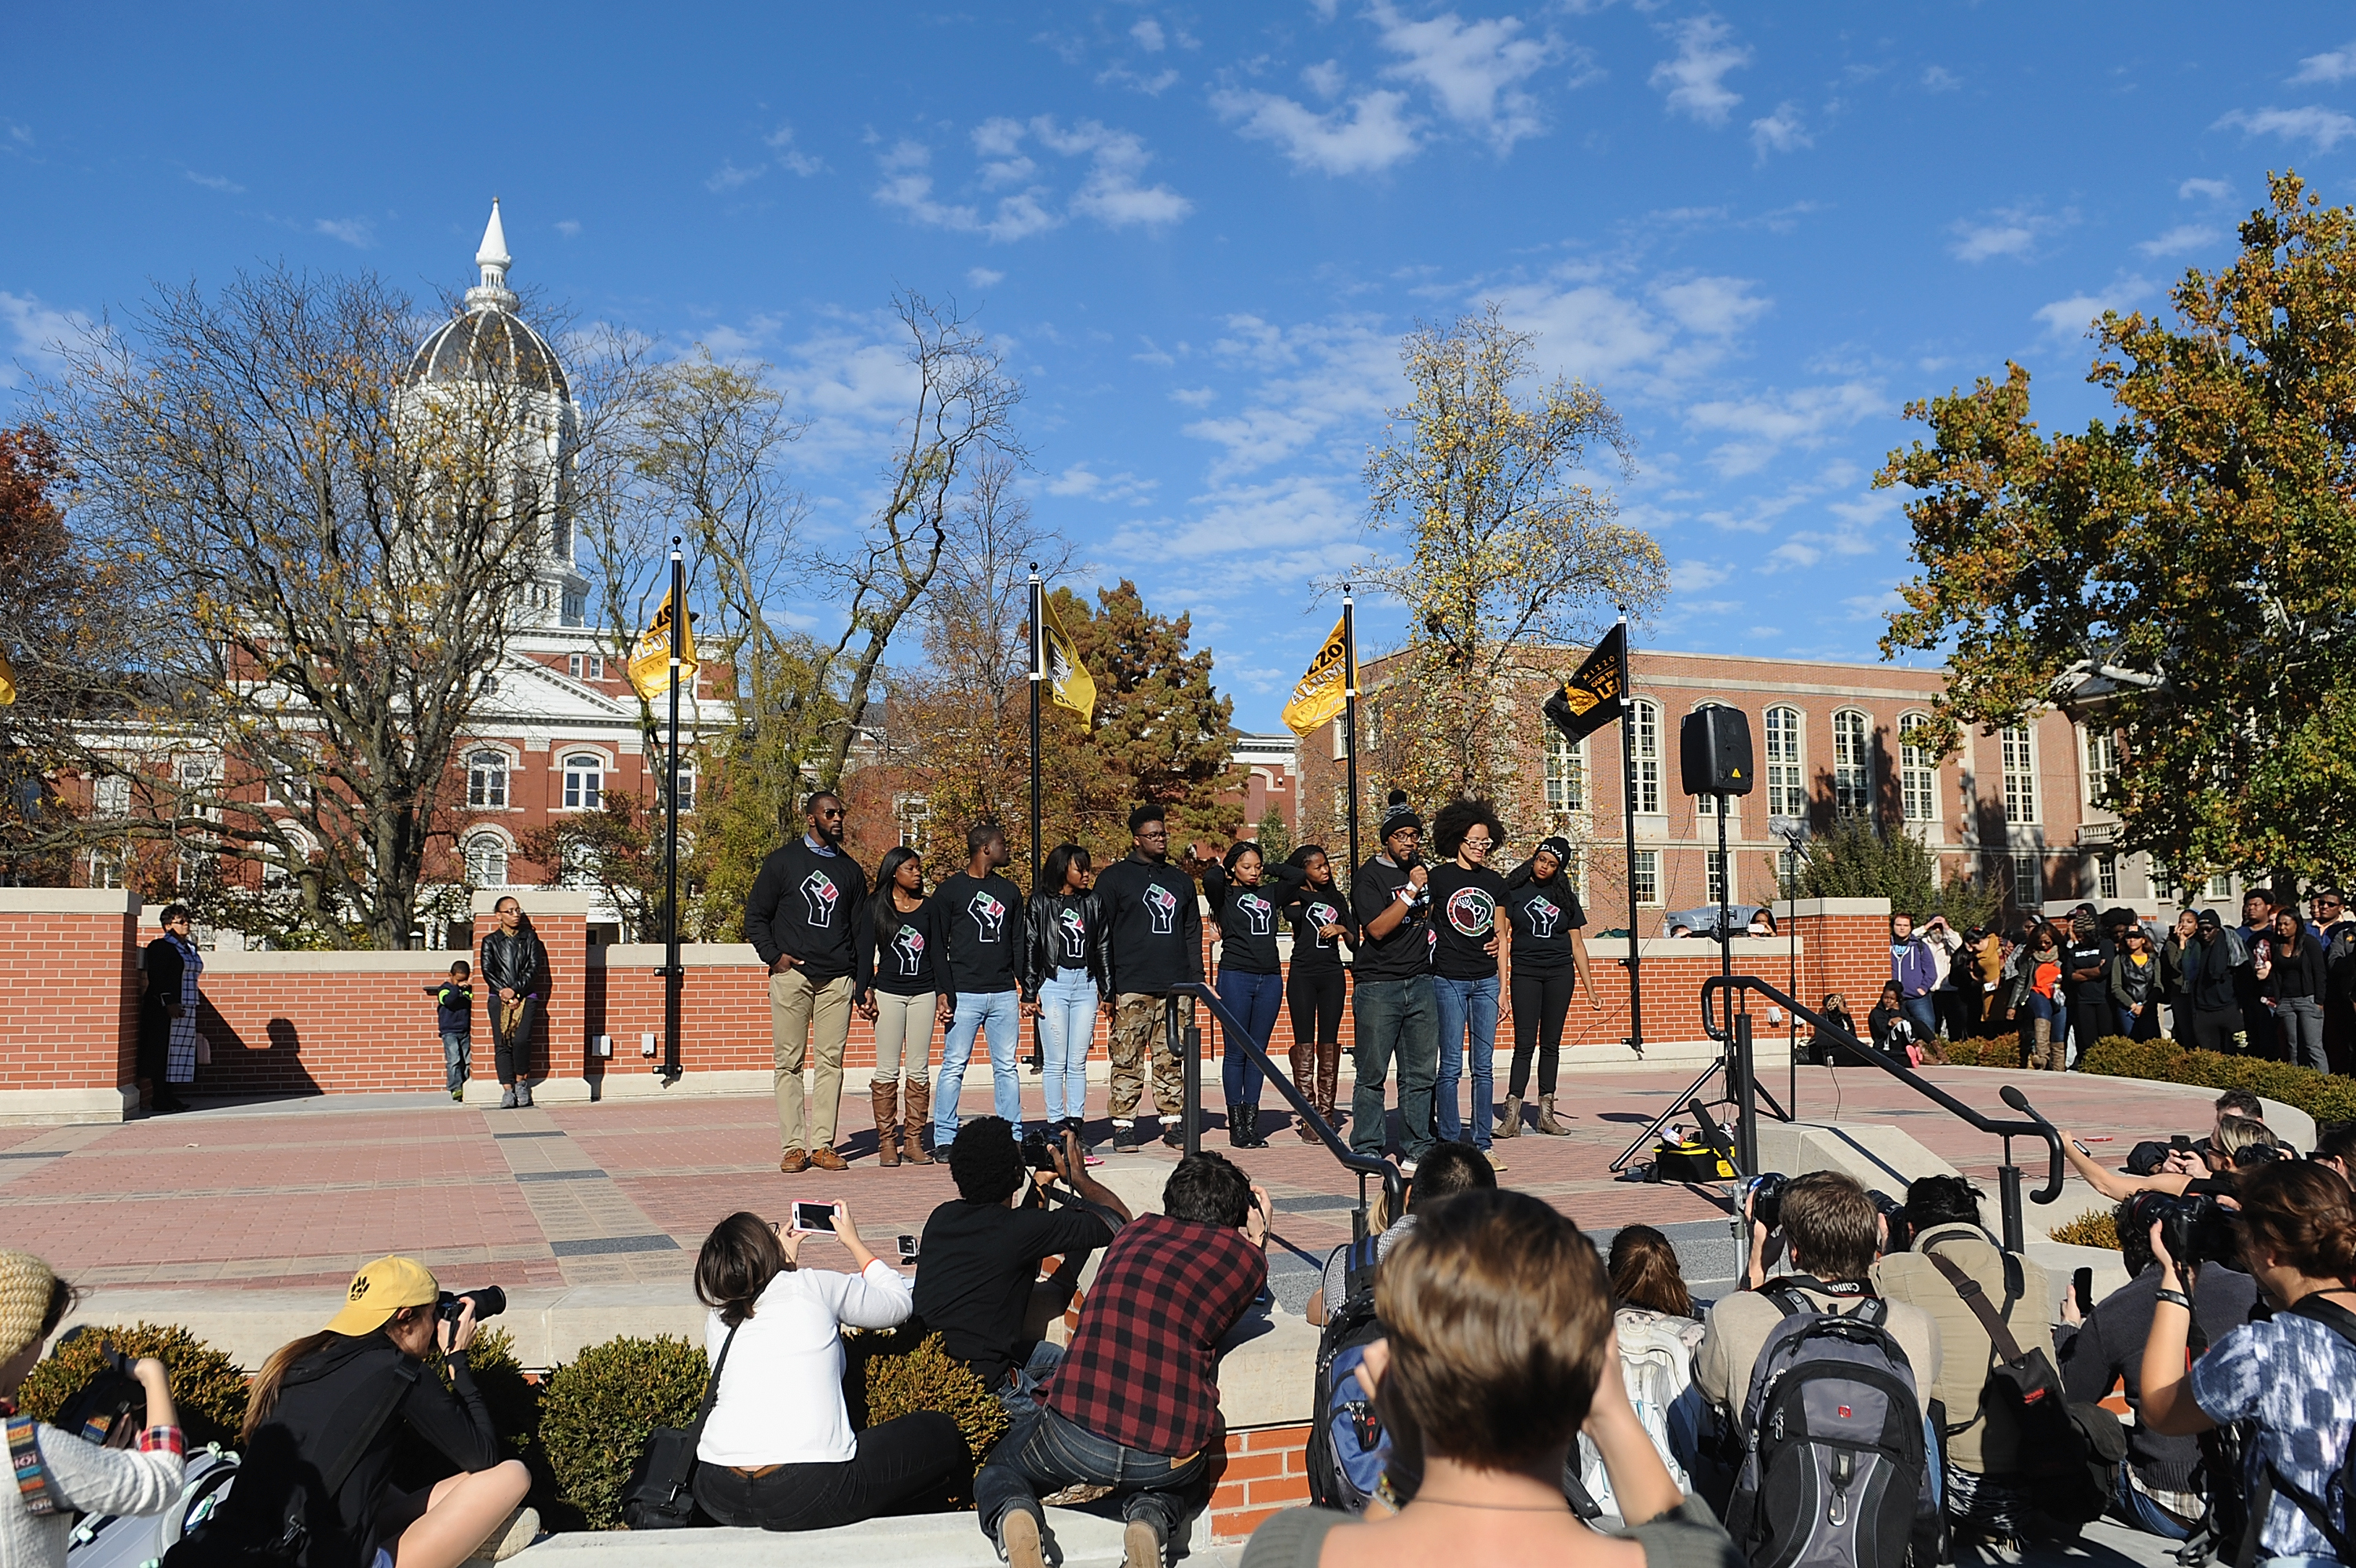 COLUMBIA, MO - NOVEMBER 9: Members of the Concerned Student 1950 movement speak to the crowd of students on the campus of University of Missouri - Columbia on November 9, 2015 in Columbia, Missouri. Students celebrate the resignation of University of Missouri System President Tim Wolfe amid allegations of racism.